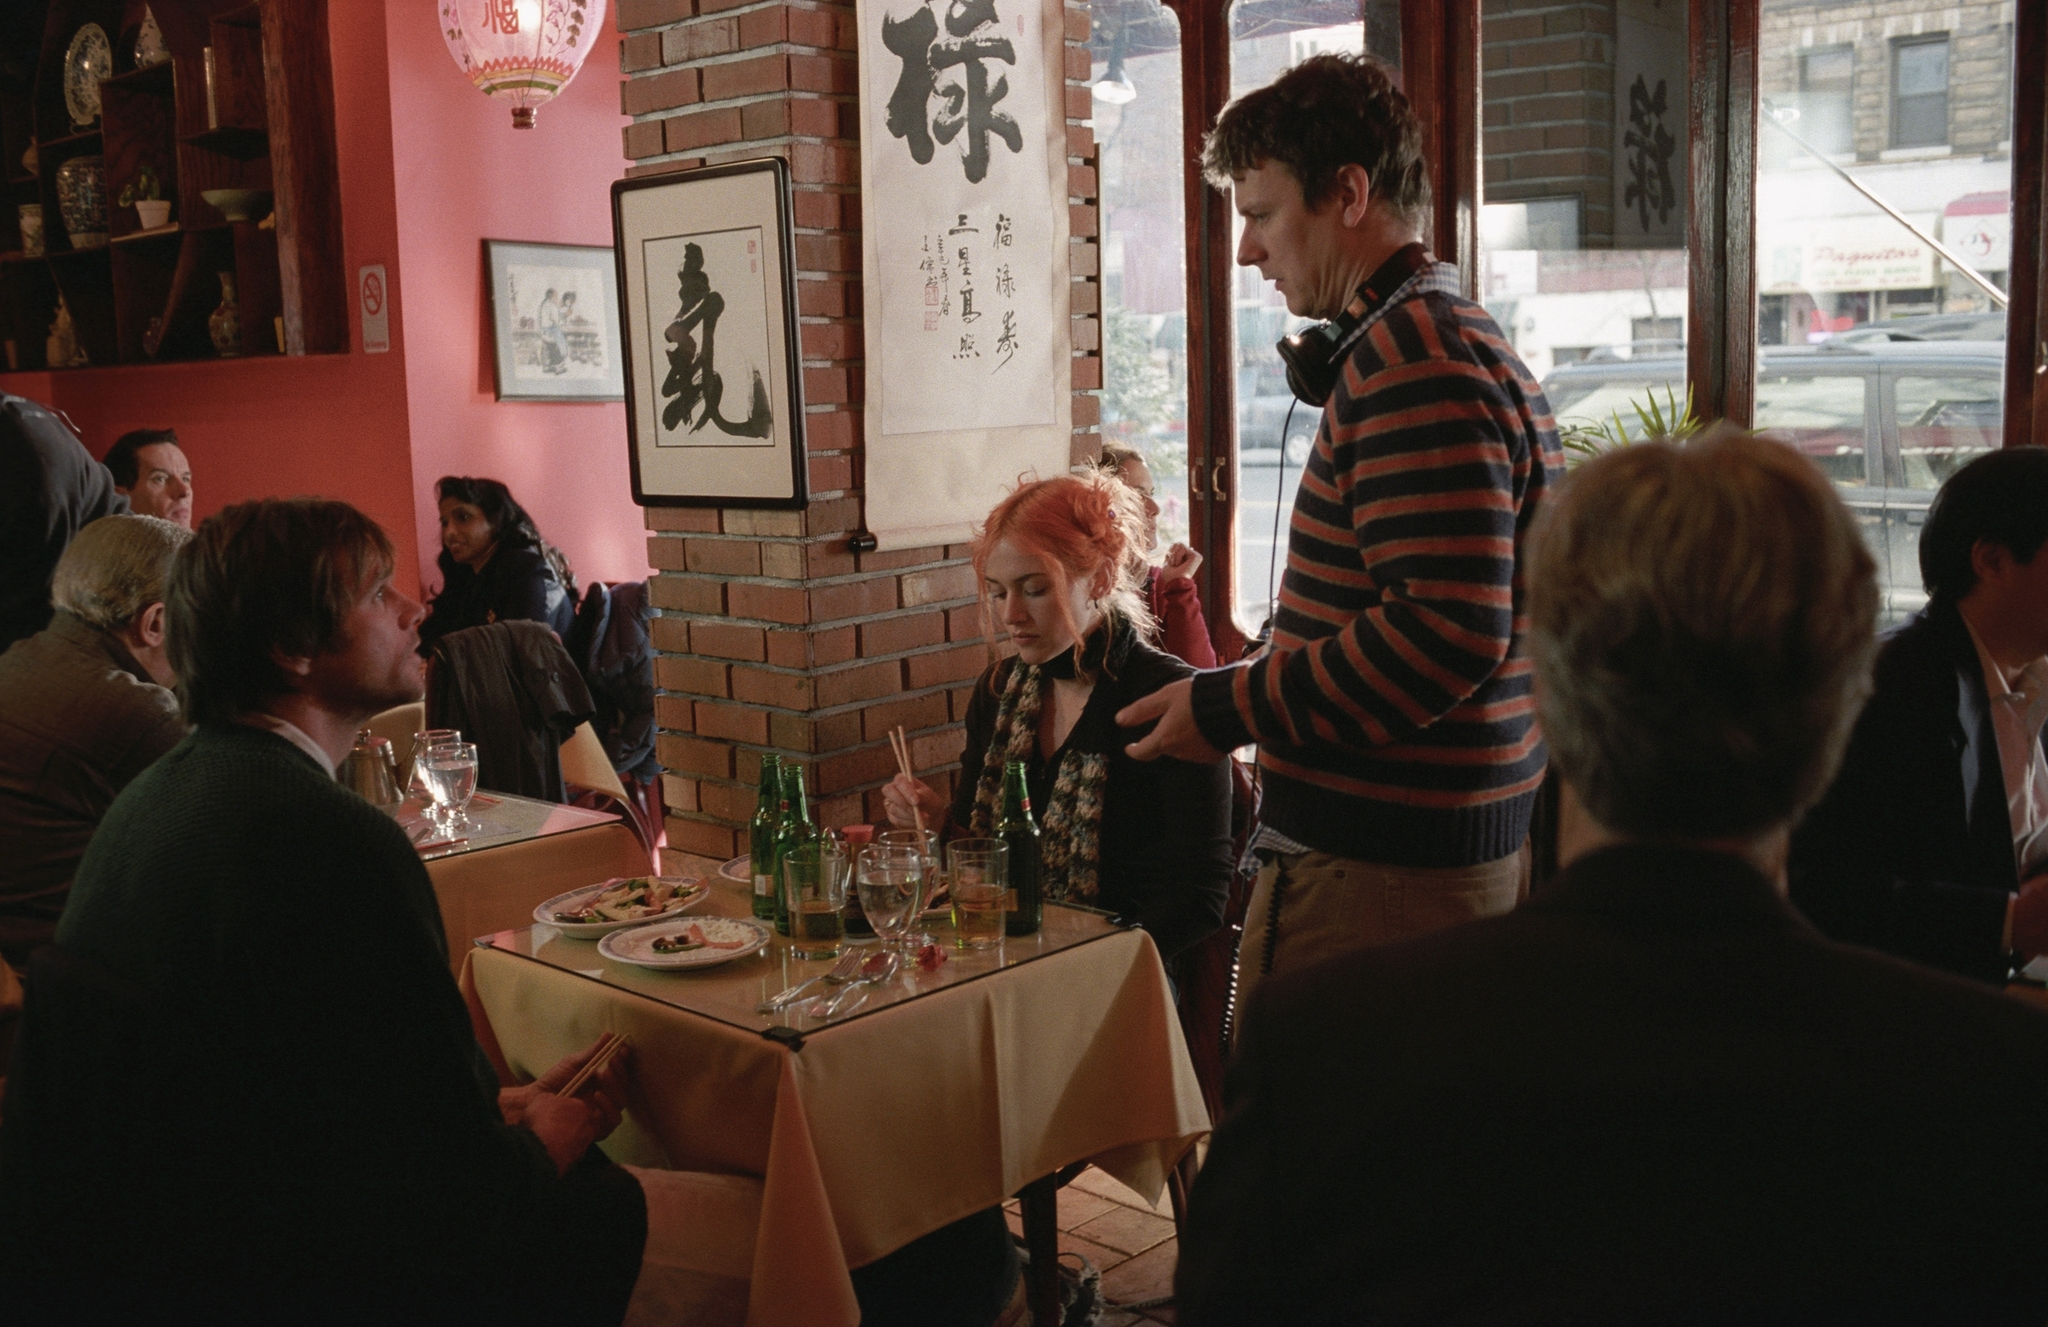 Jim Carrey, Kate Winslet, and Michel Gondry in Eternal Sunshine of the Spotless Mind (2004)